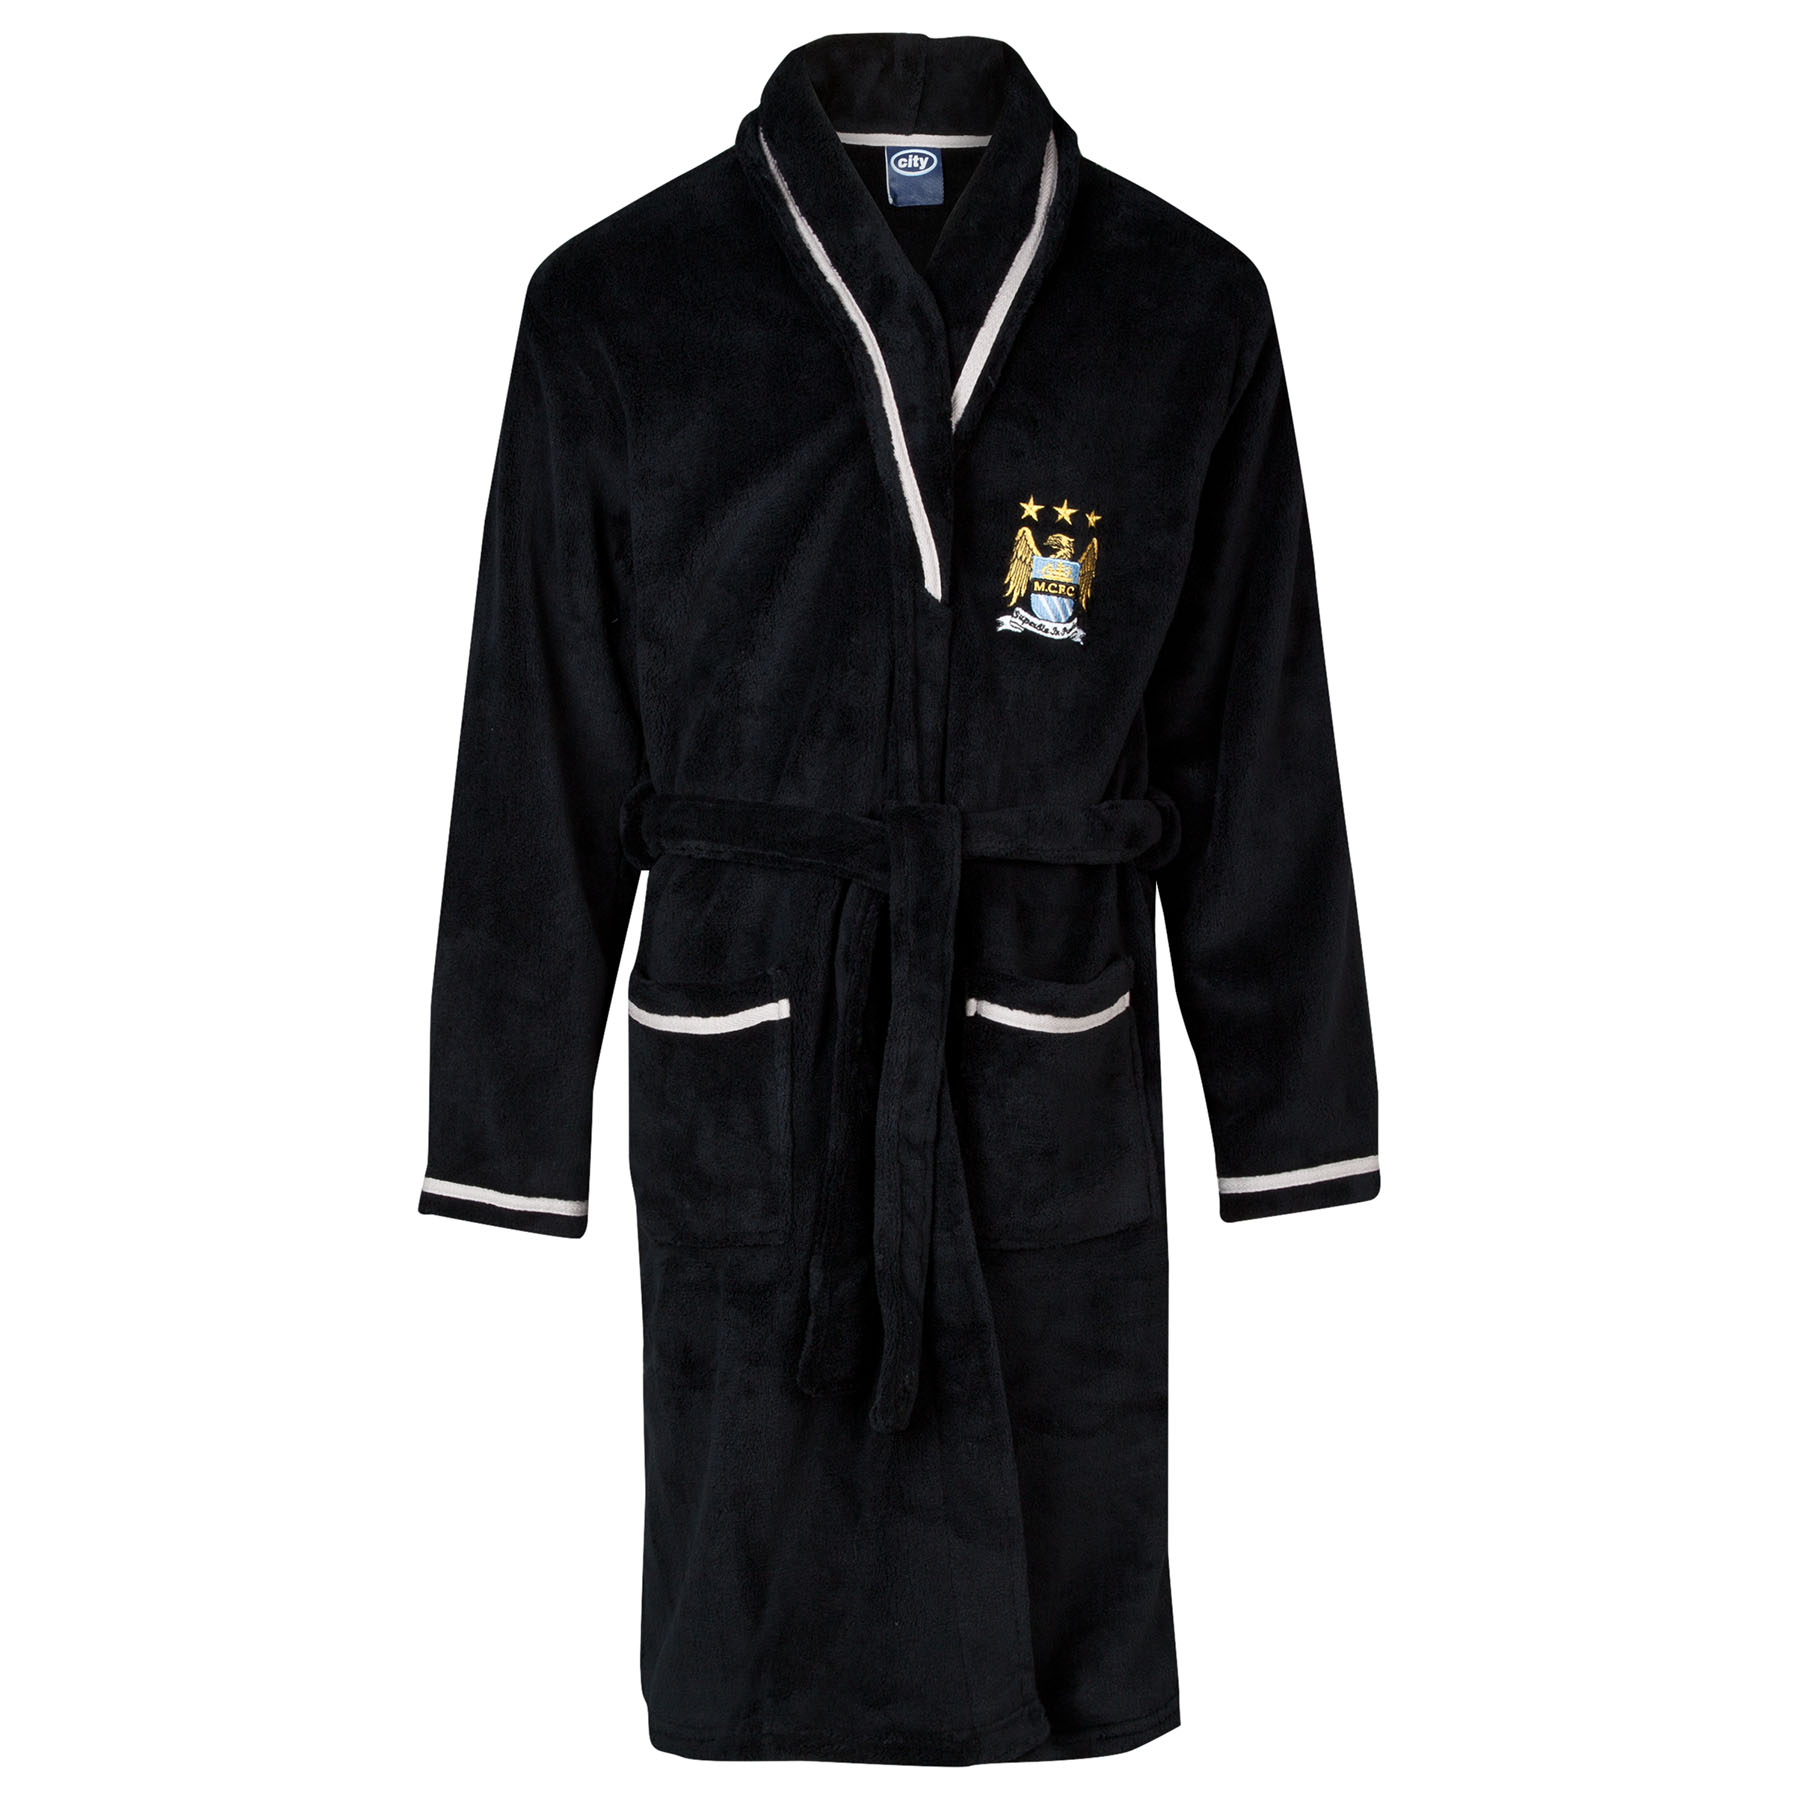 Manchester City Robe - Black - Boys